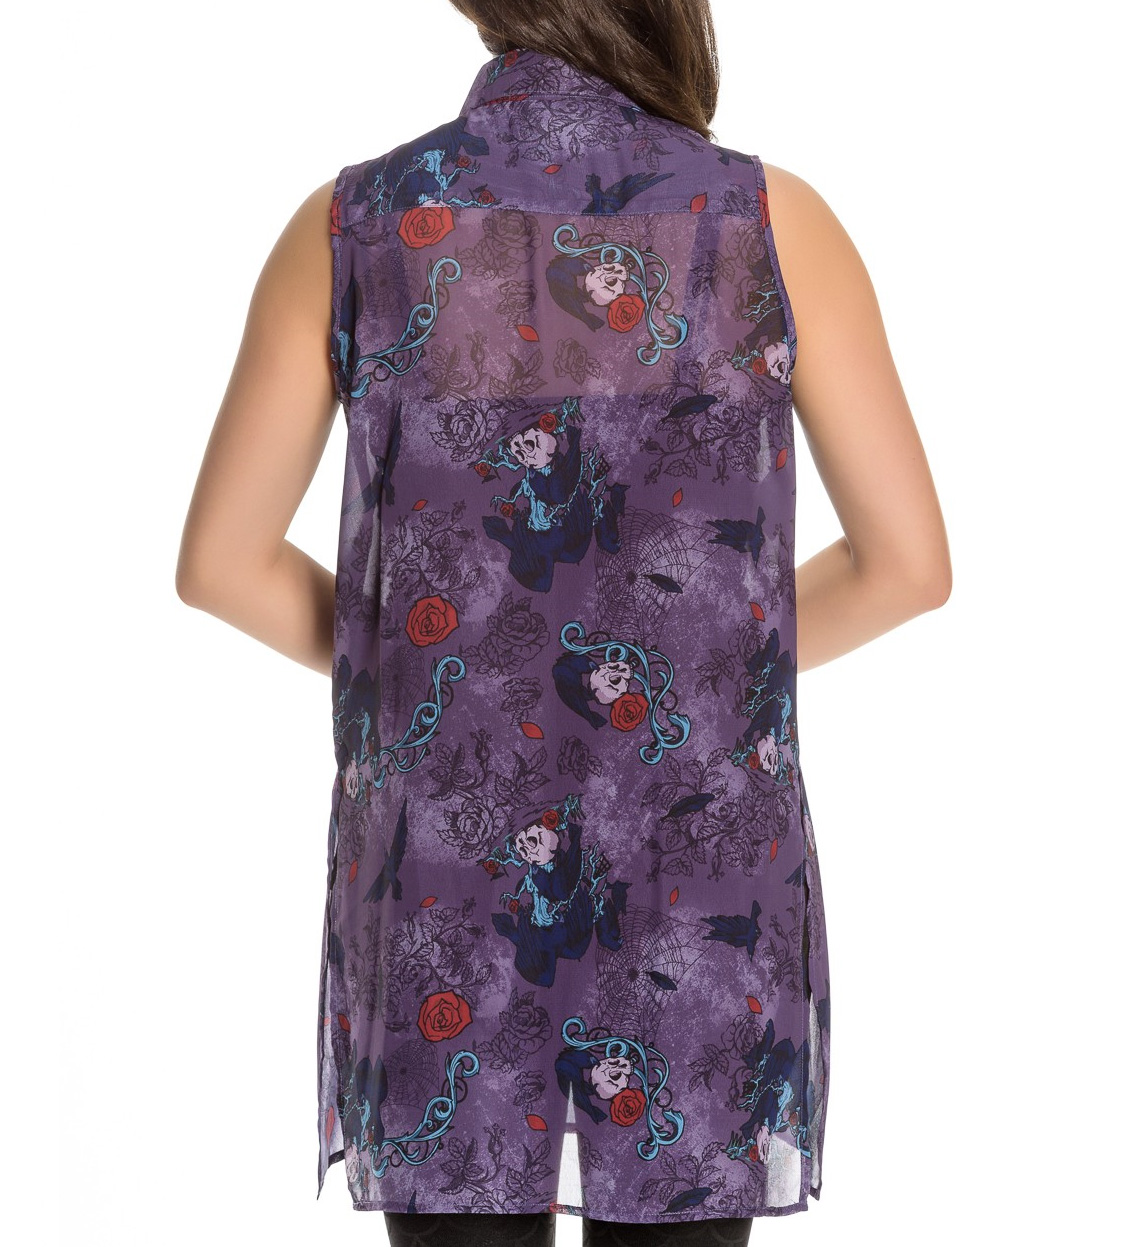 Hell-Bunny-Shirt-Top-Goth-Punk-Roses-Skulls-RAVEN-Purple-Blouse-All-Sizes thumbnail 29